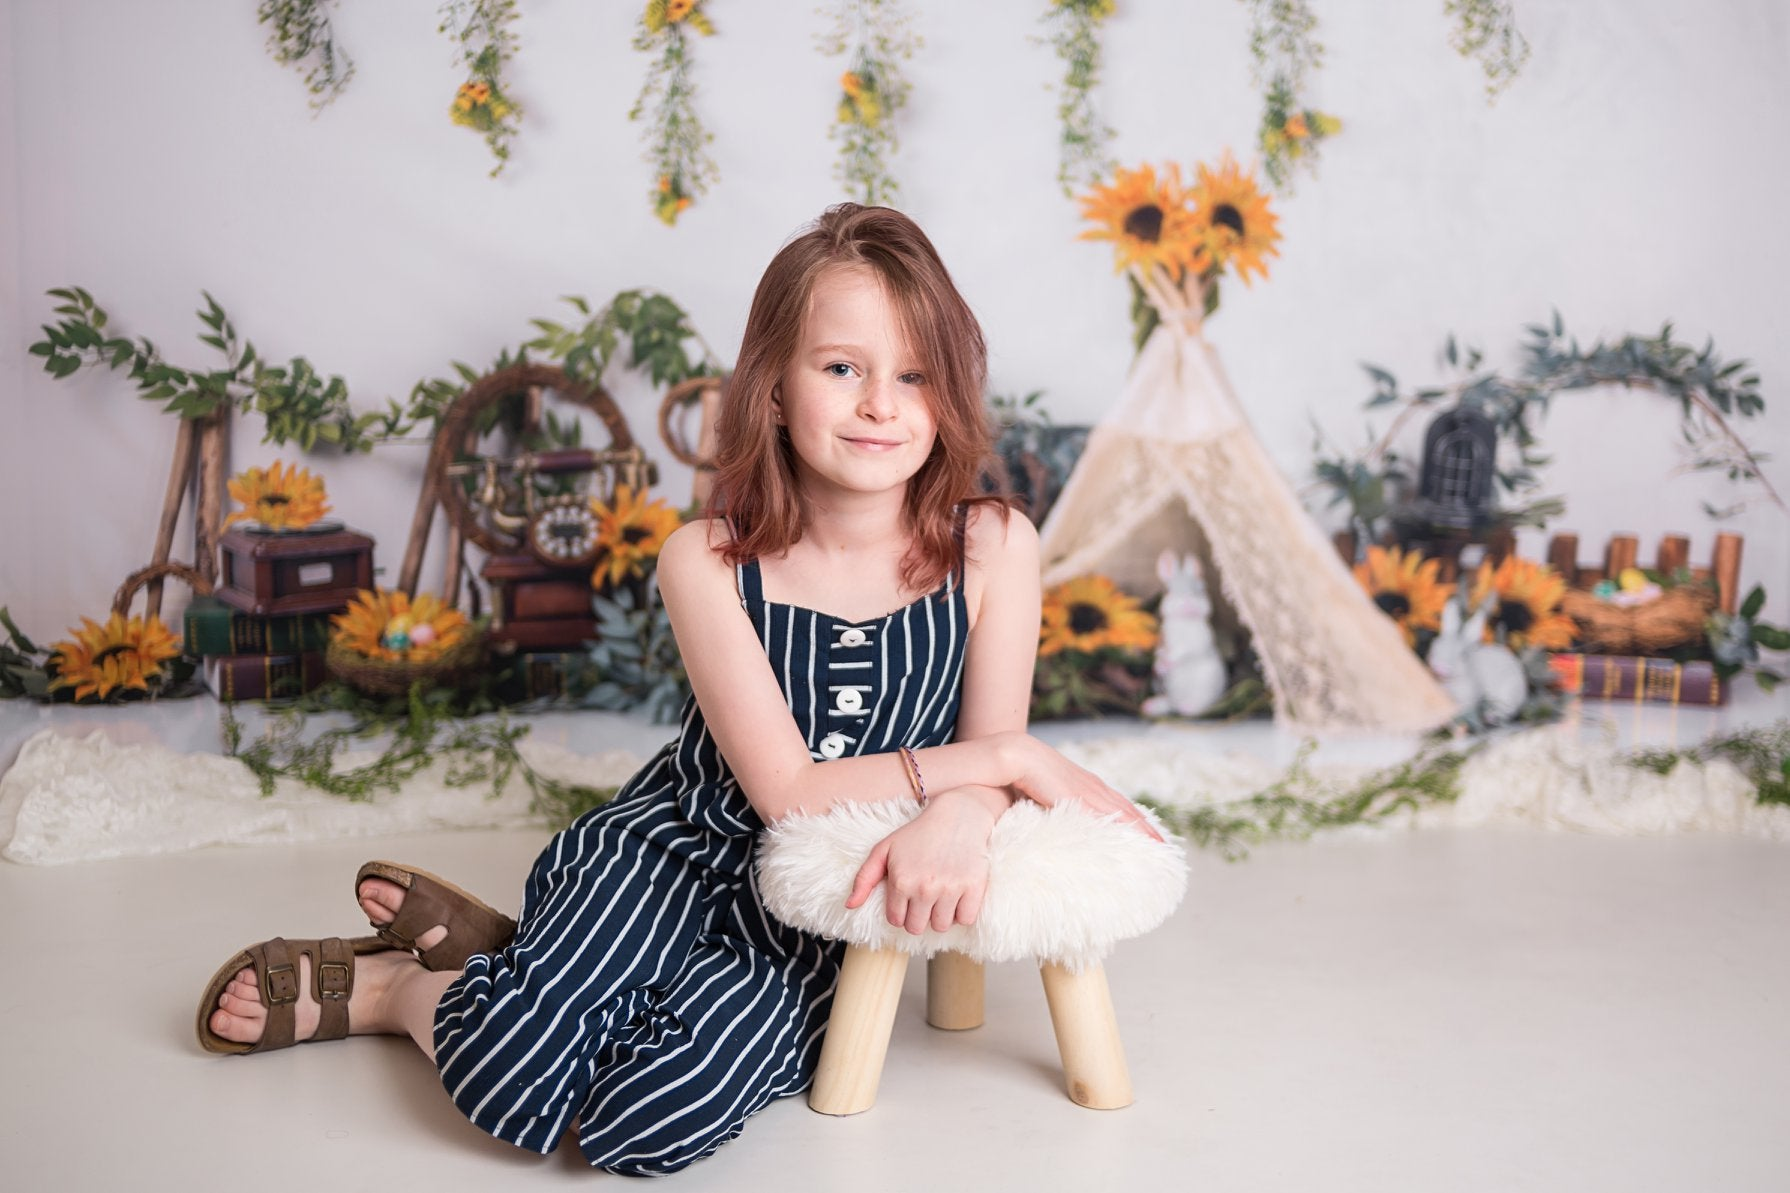 Load image into Gallery viewer, Kate Spring Sunflowers with Tent Backdrop Designed by Jia Chan Photography